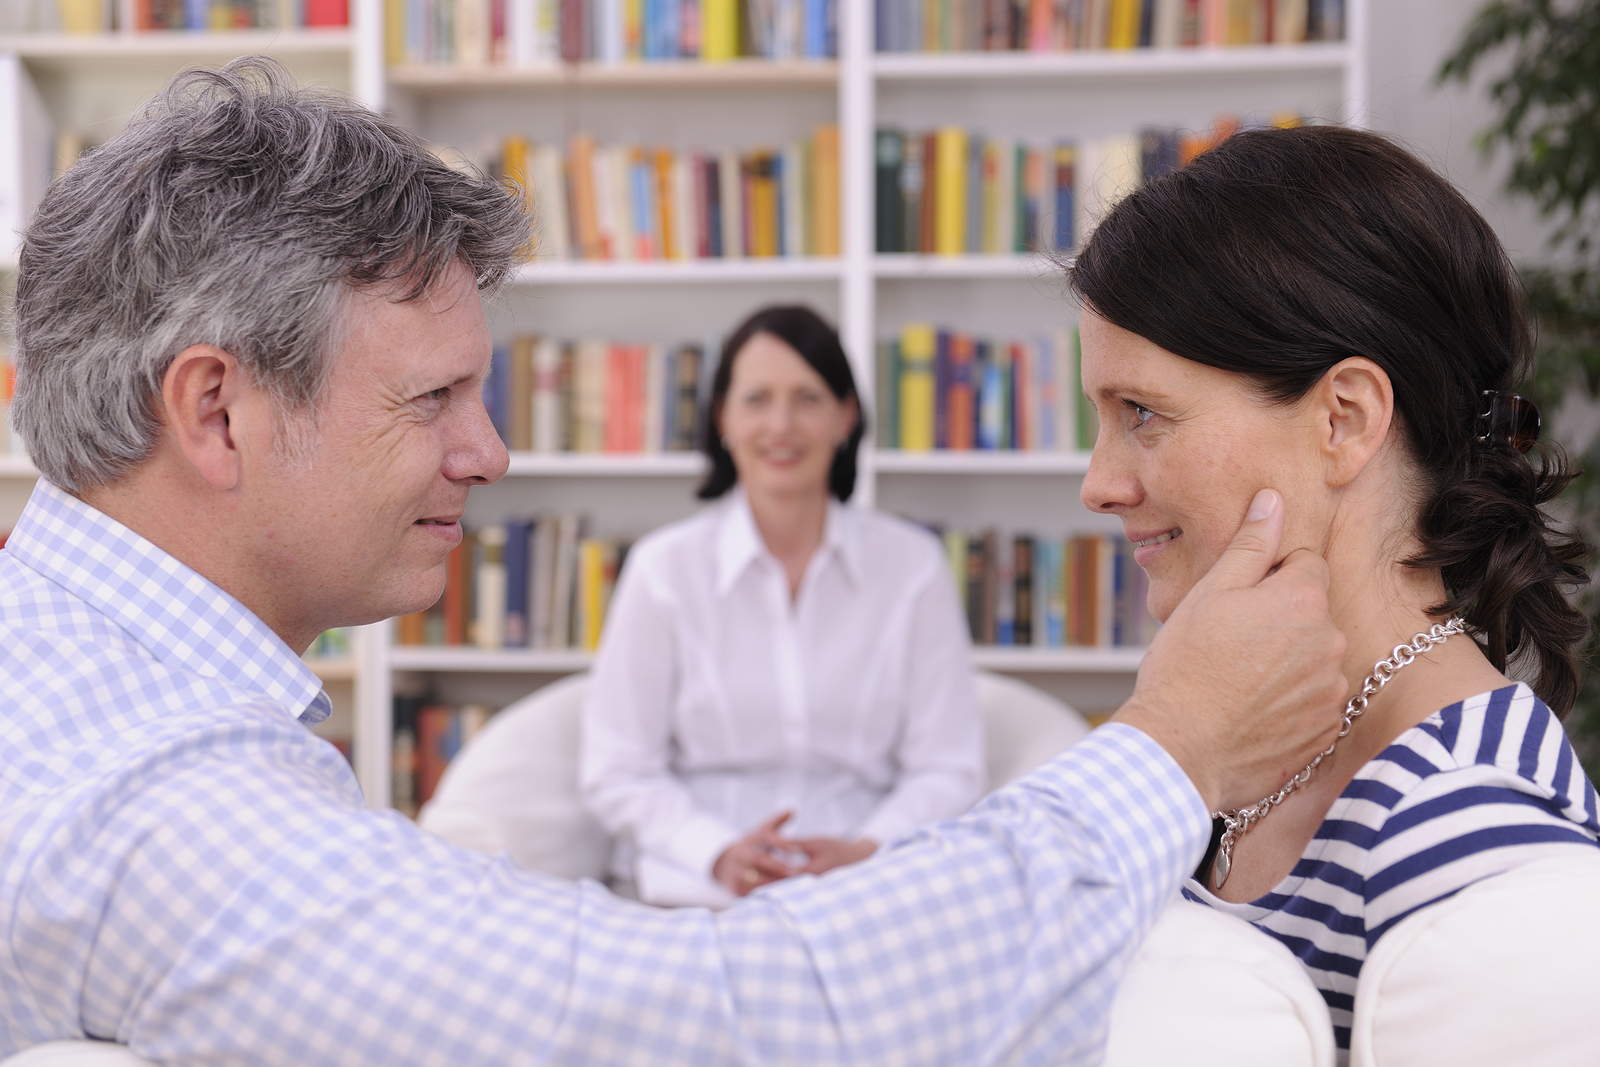 counseling couples and families psychology essay Informal forms of marriage and family counseling have been around for a long time counseling was most likely provided by family, friends, doctors, clergy, and lawyers the different approaches of family therapy are very diverse.